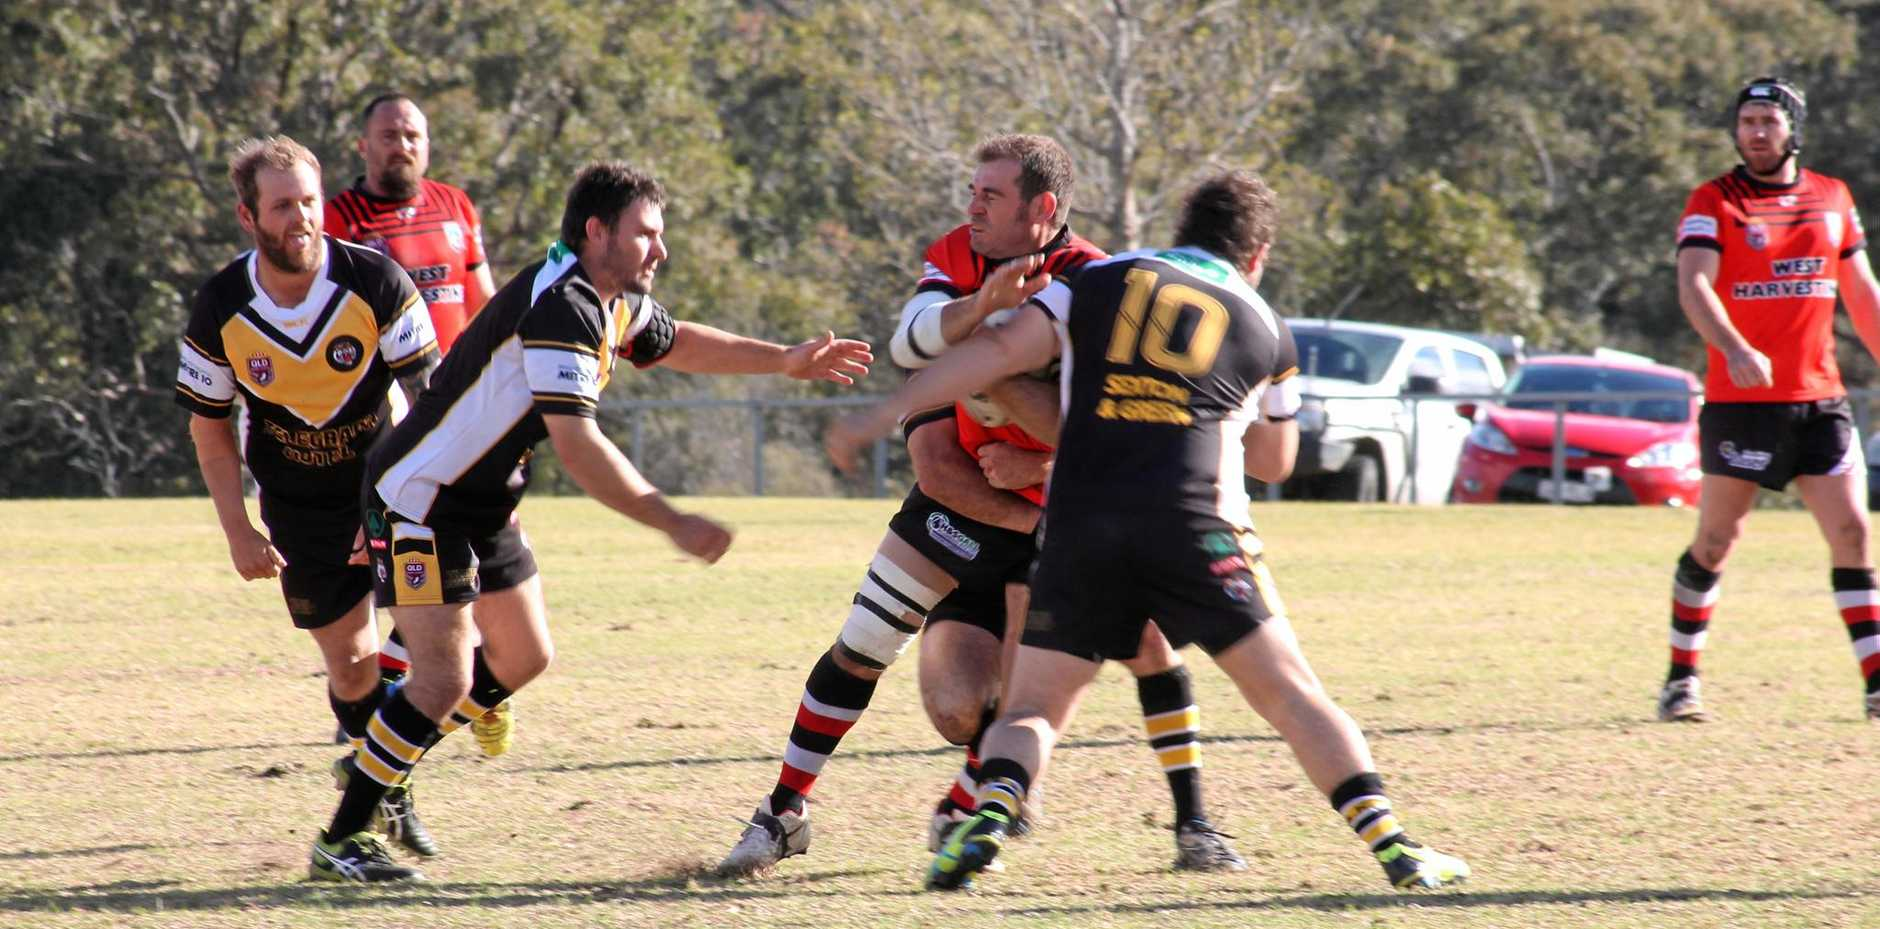 The competition will be tough this weekend as the Tenterfield Tigers and Inglewood Roosters go head to head in the grand final.